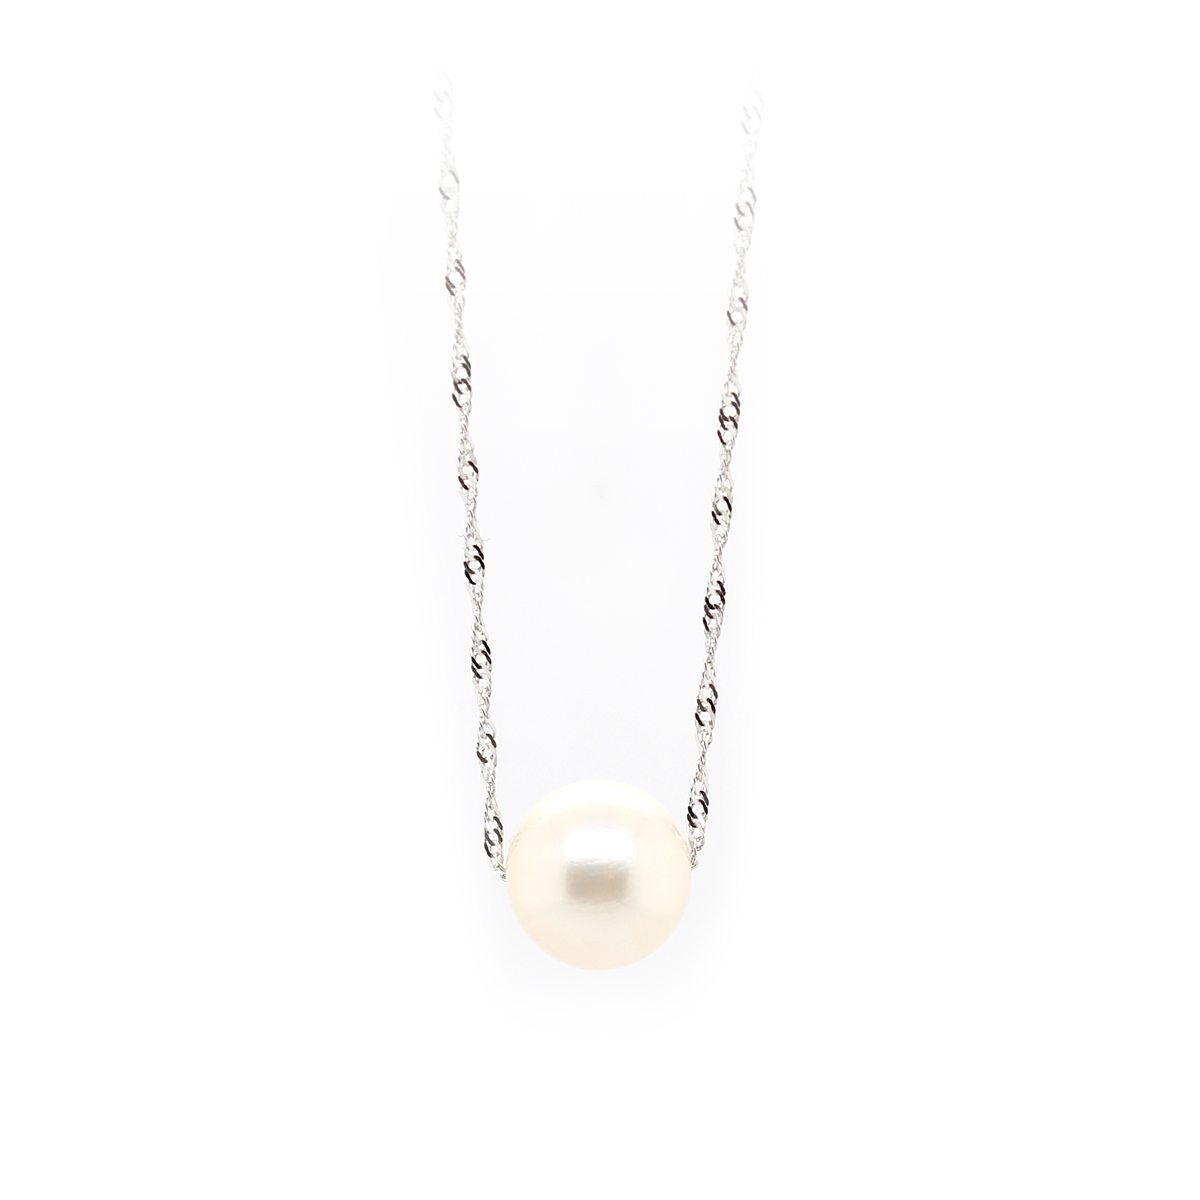 14 Karat White Gold Twisted Serpentine Chain with One White Pearl